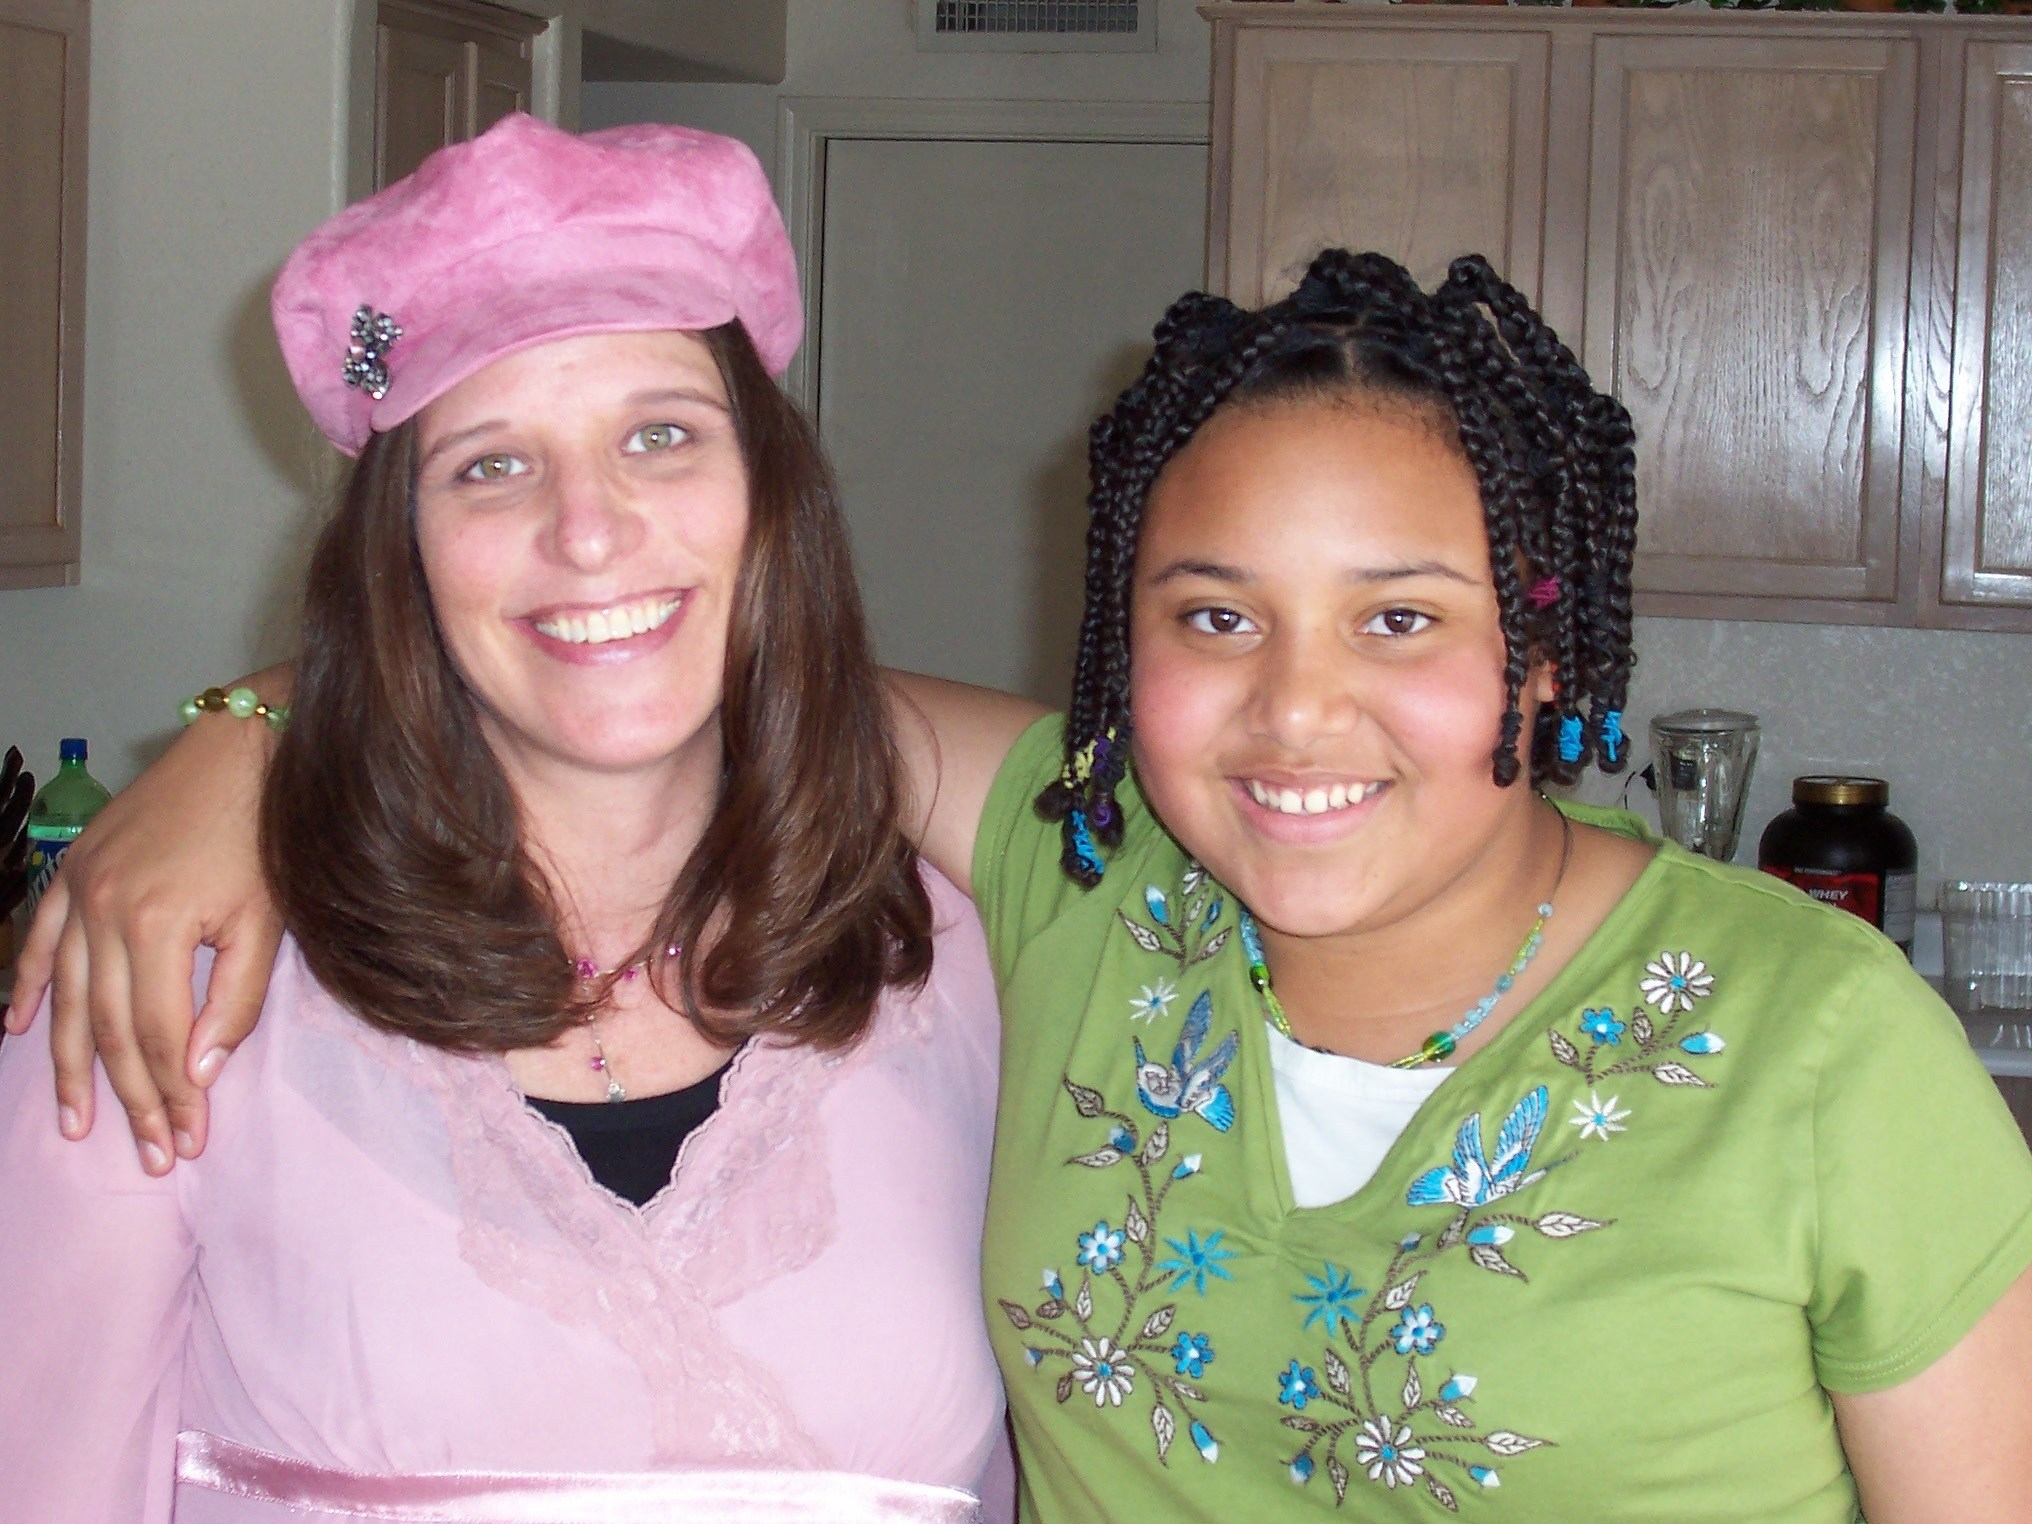 Chaunell and Leanna pink hat